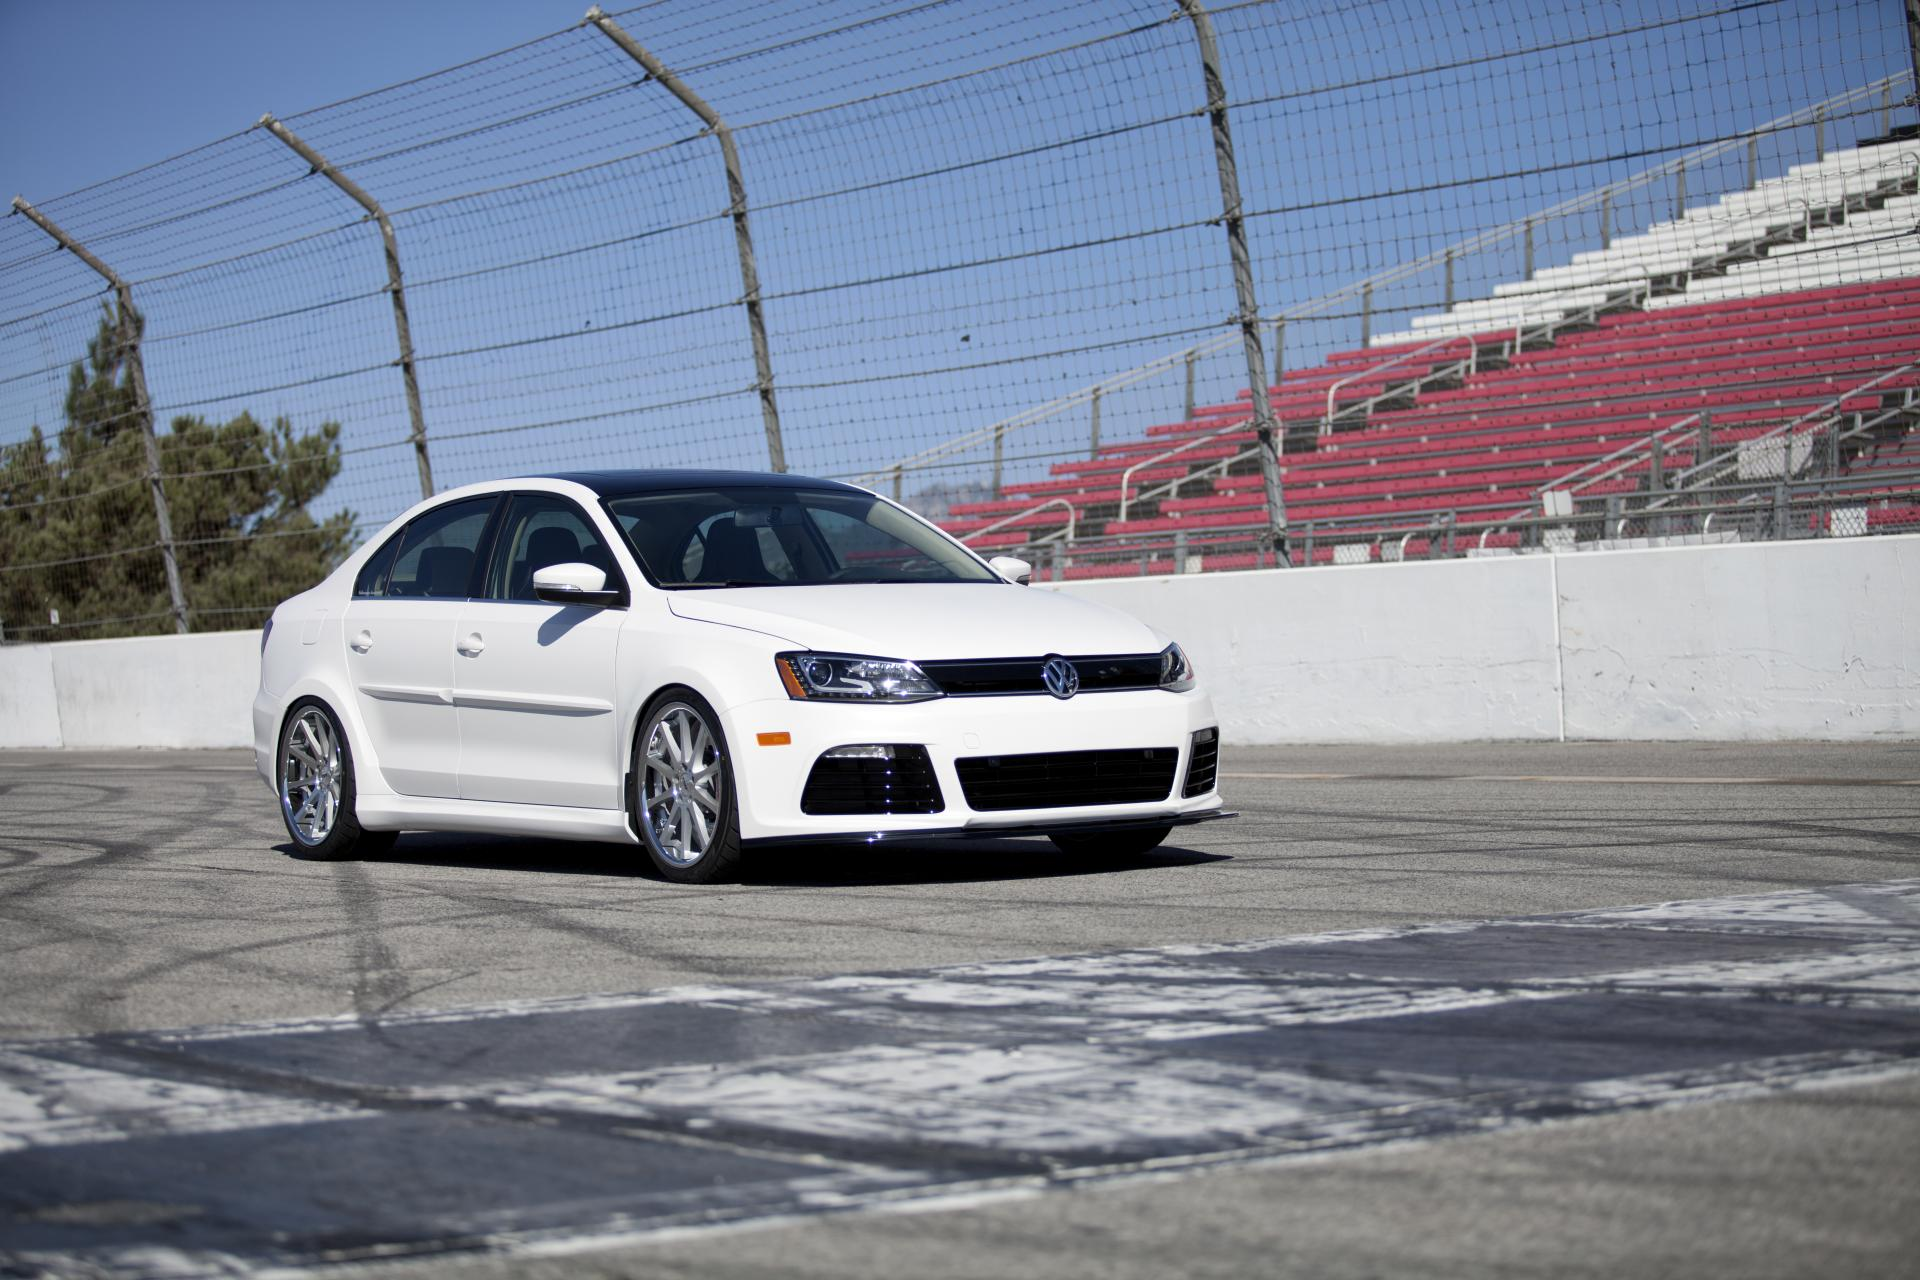 2014 Volkswagen FMS Performance Jetta News and Information